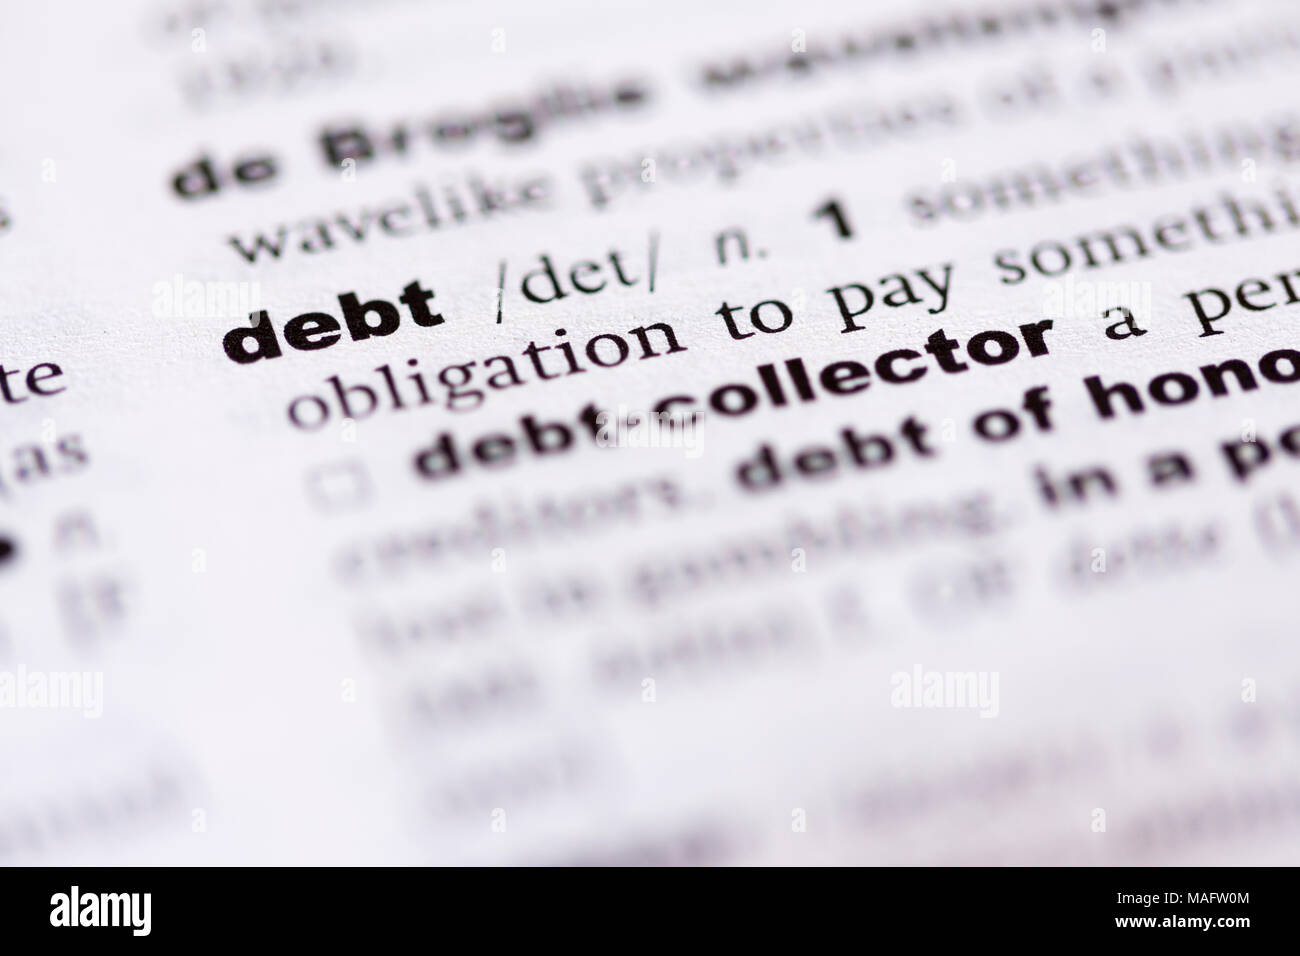 A macro shot showing the definition of the word debt in an English dictionary - Stock Image